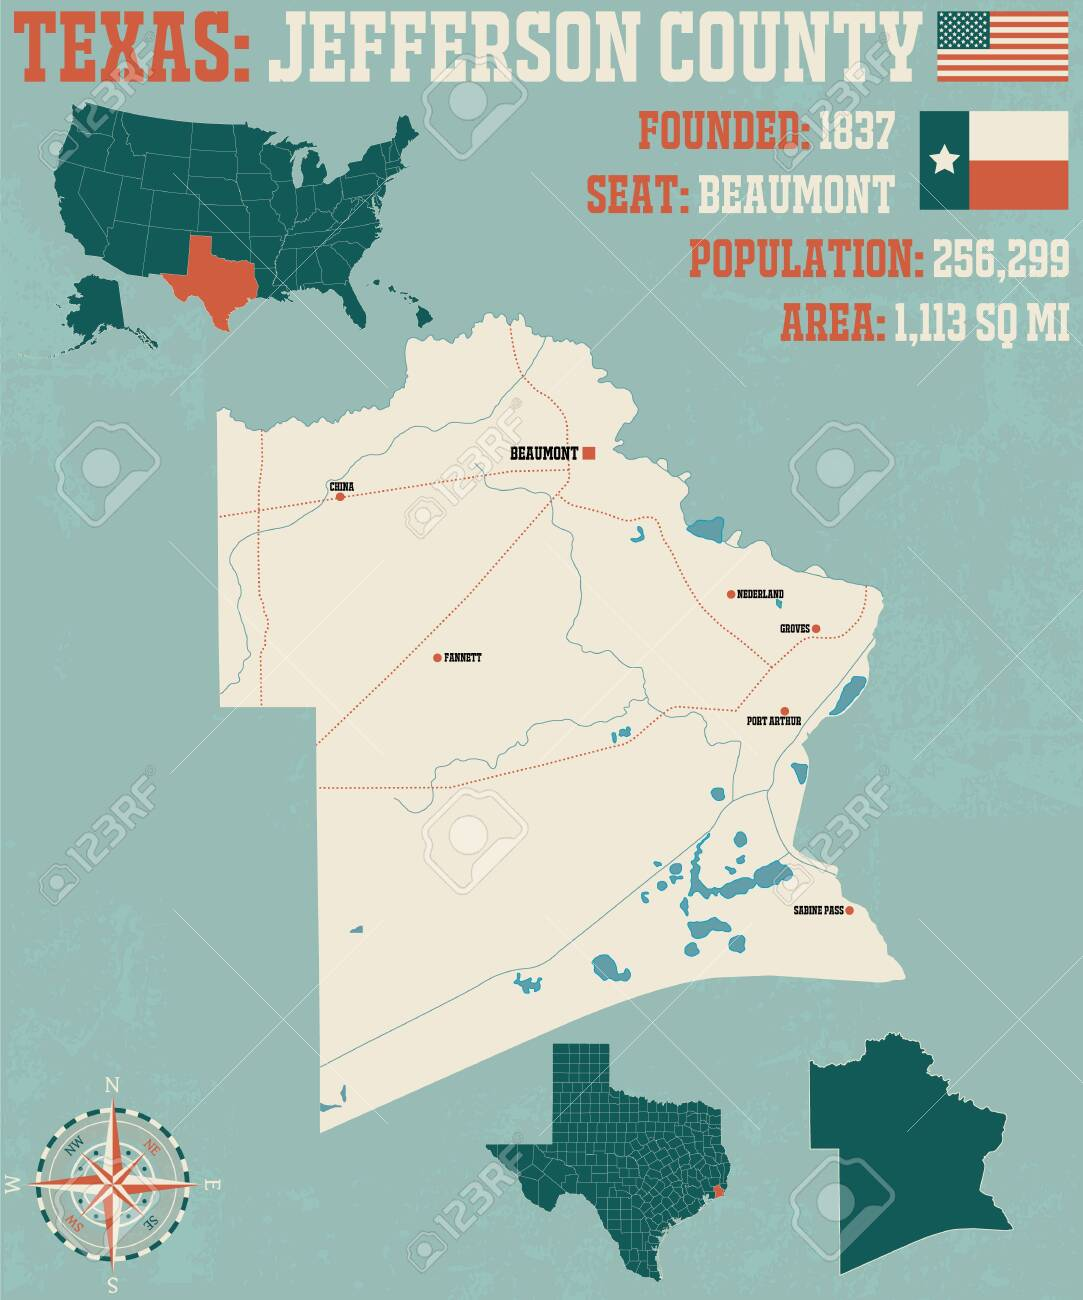 Detailed map of Jefferson County in Texas, United States on europe map 1837, united states territories 1798 to 1846, new york map 1837, texas map 1837, canada map 1837, united states congressional districts,